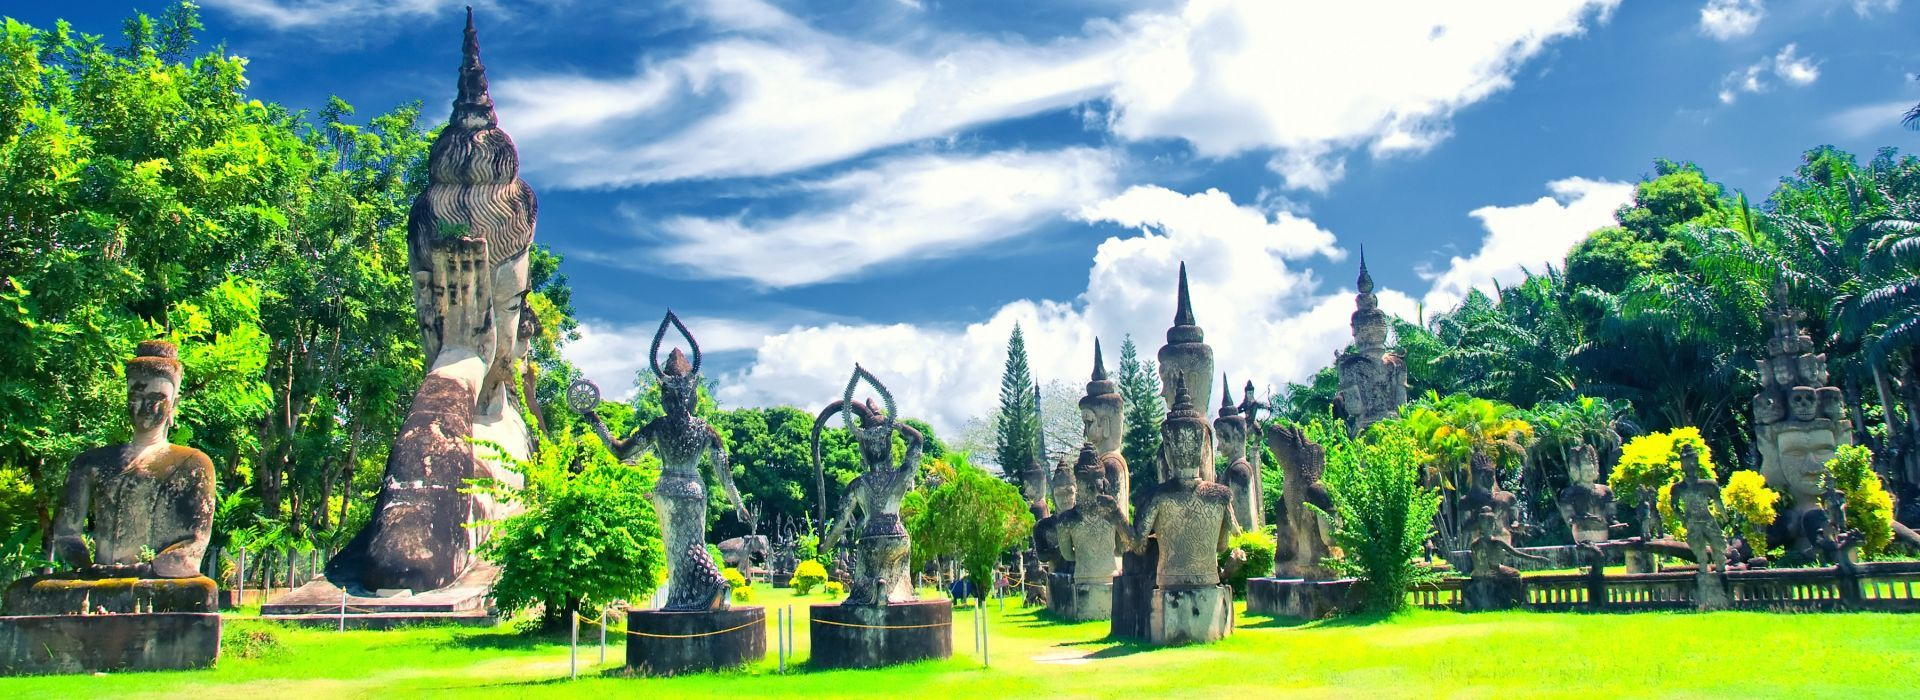 Sightseeing, attractions, culture and history Tours in Laos